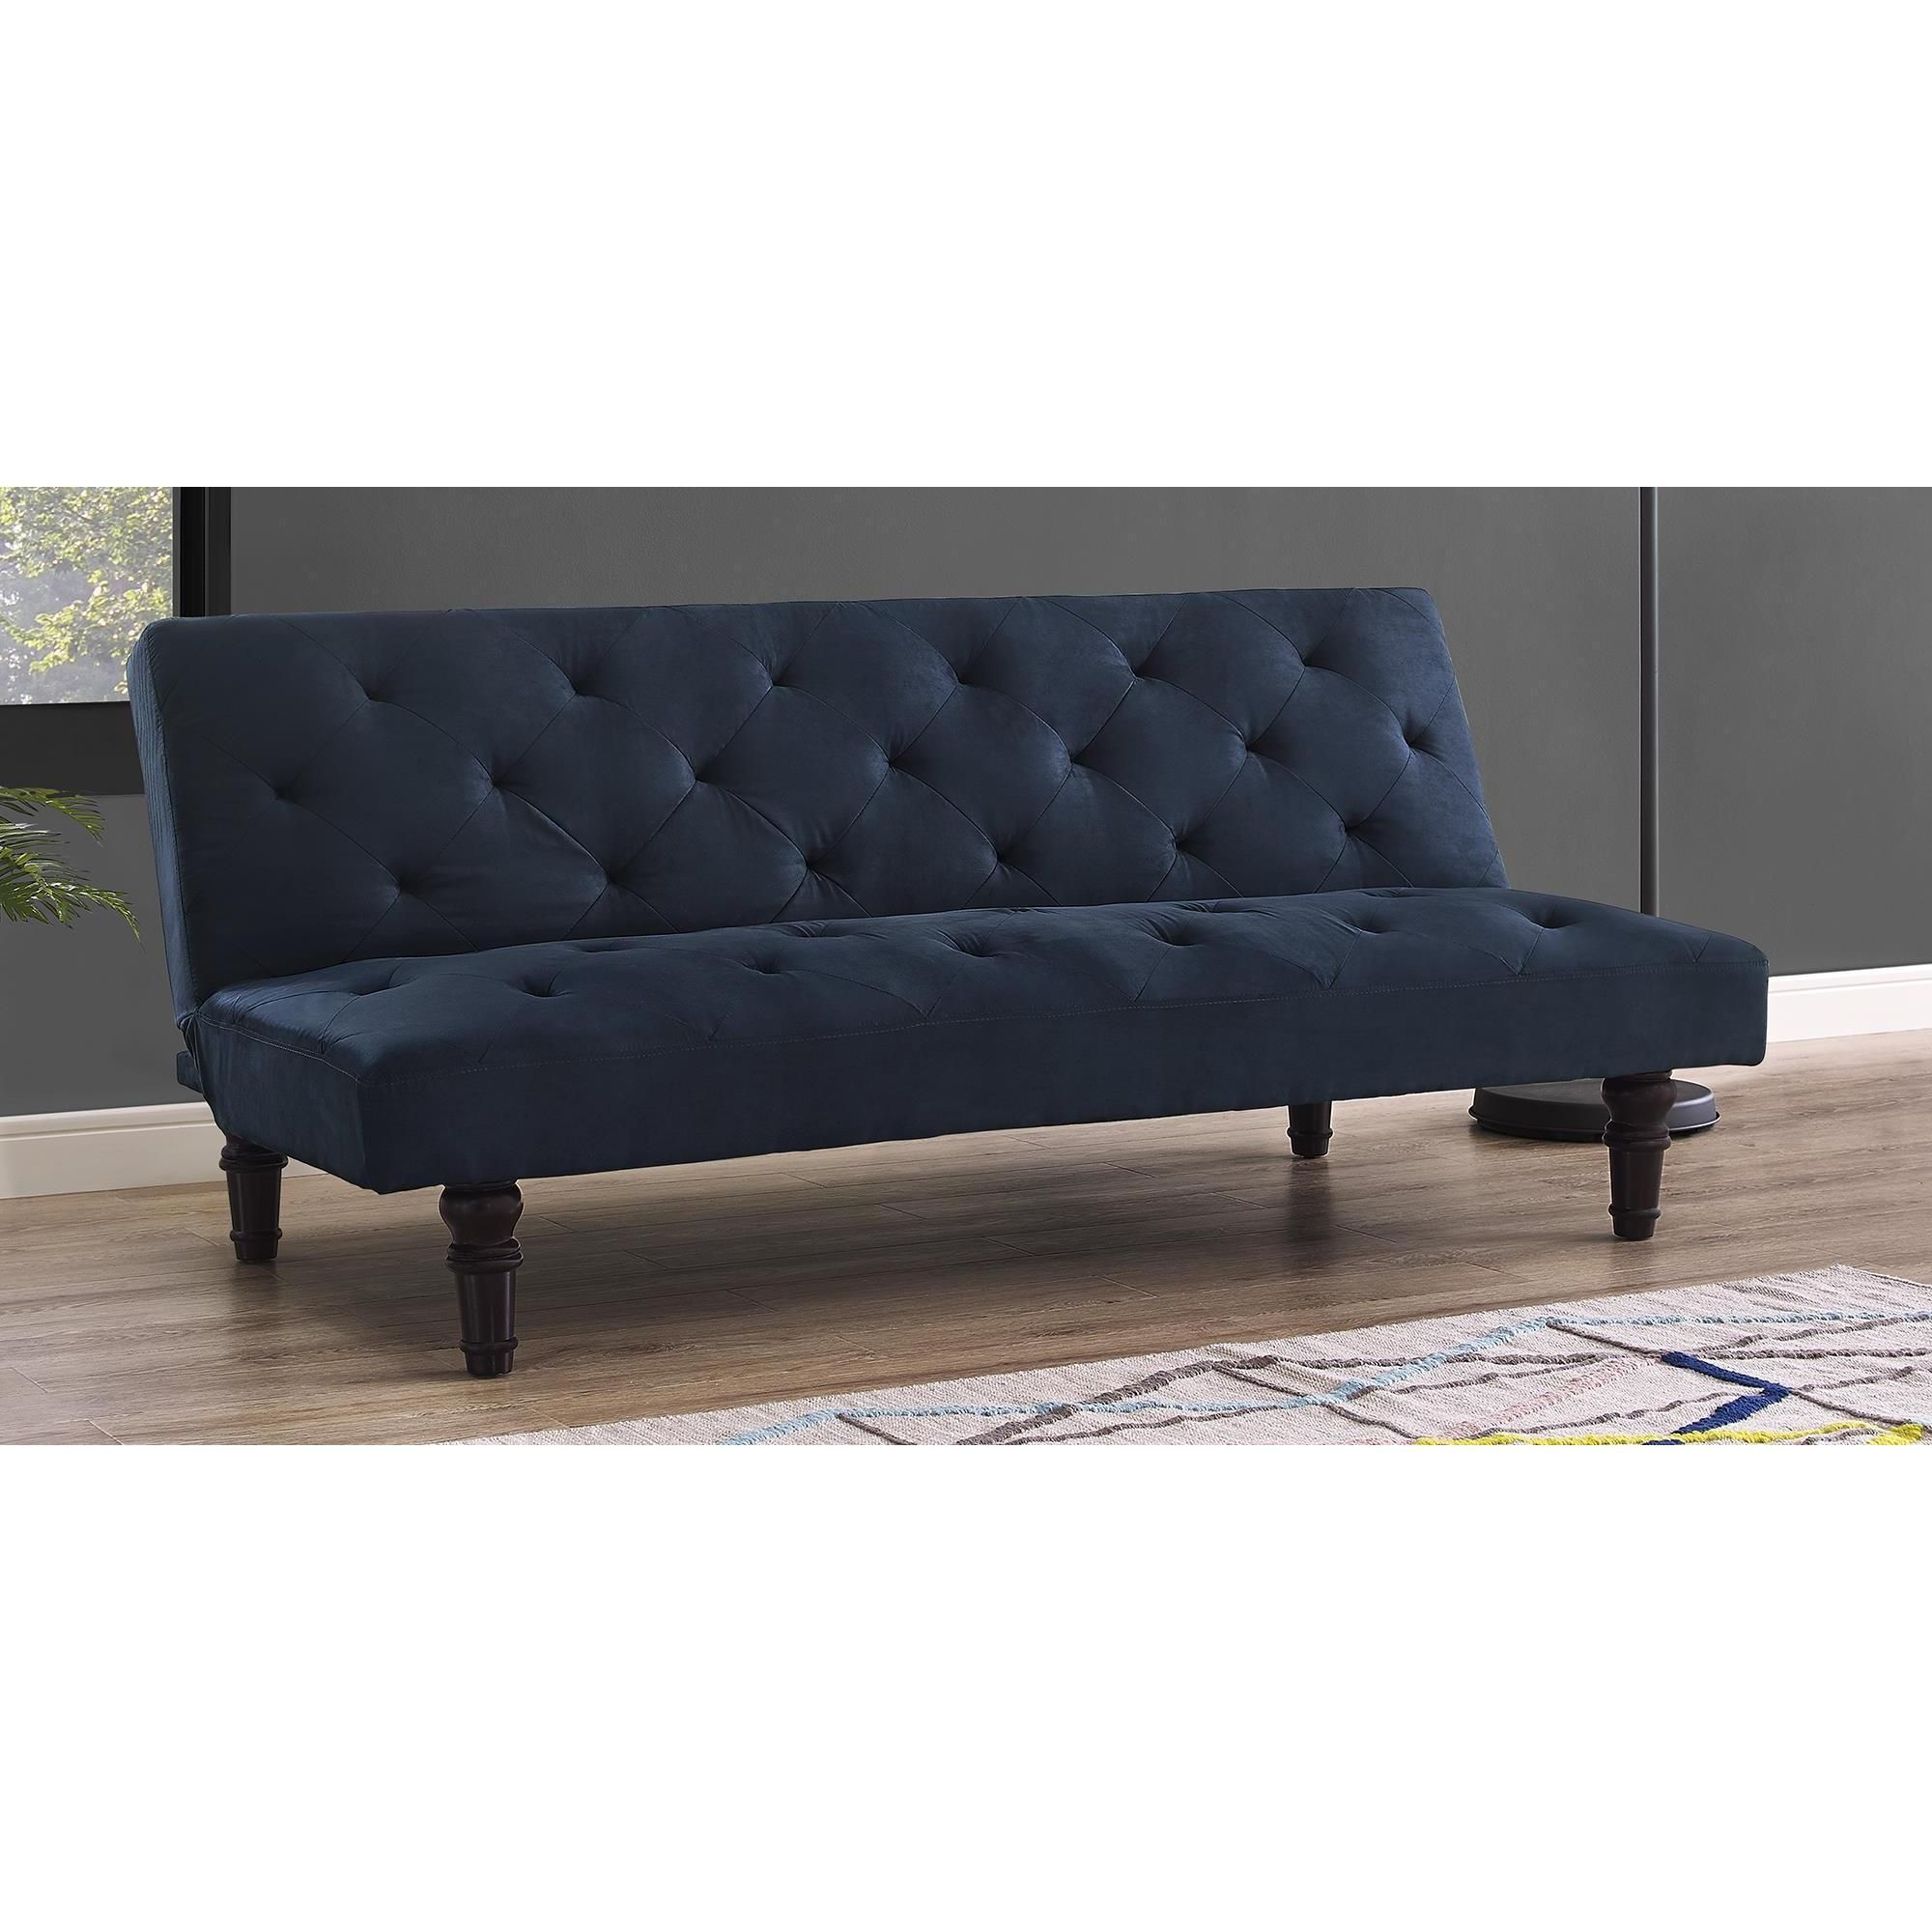 The Dhp Orfino Futon Will Instantly Add A Touch Of Cl In